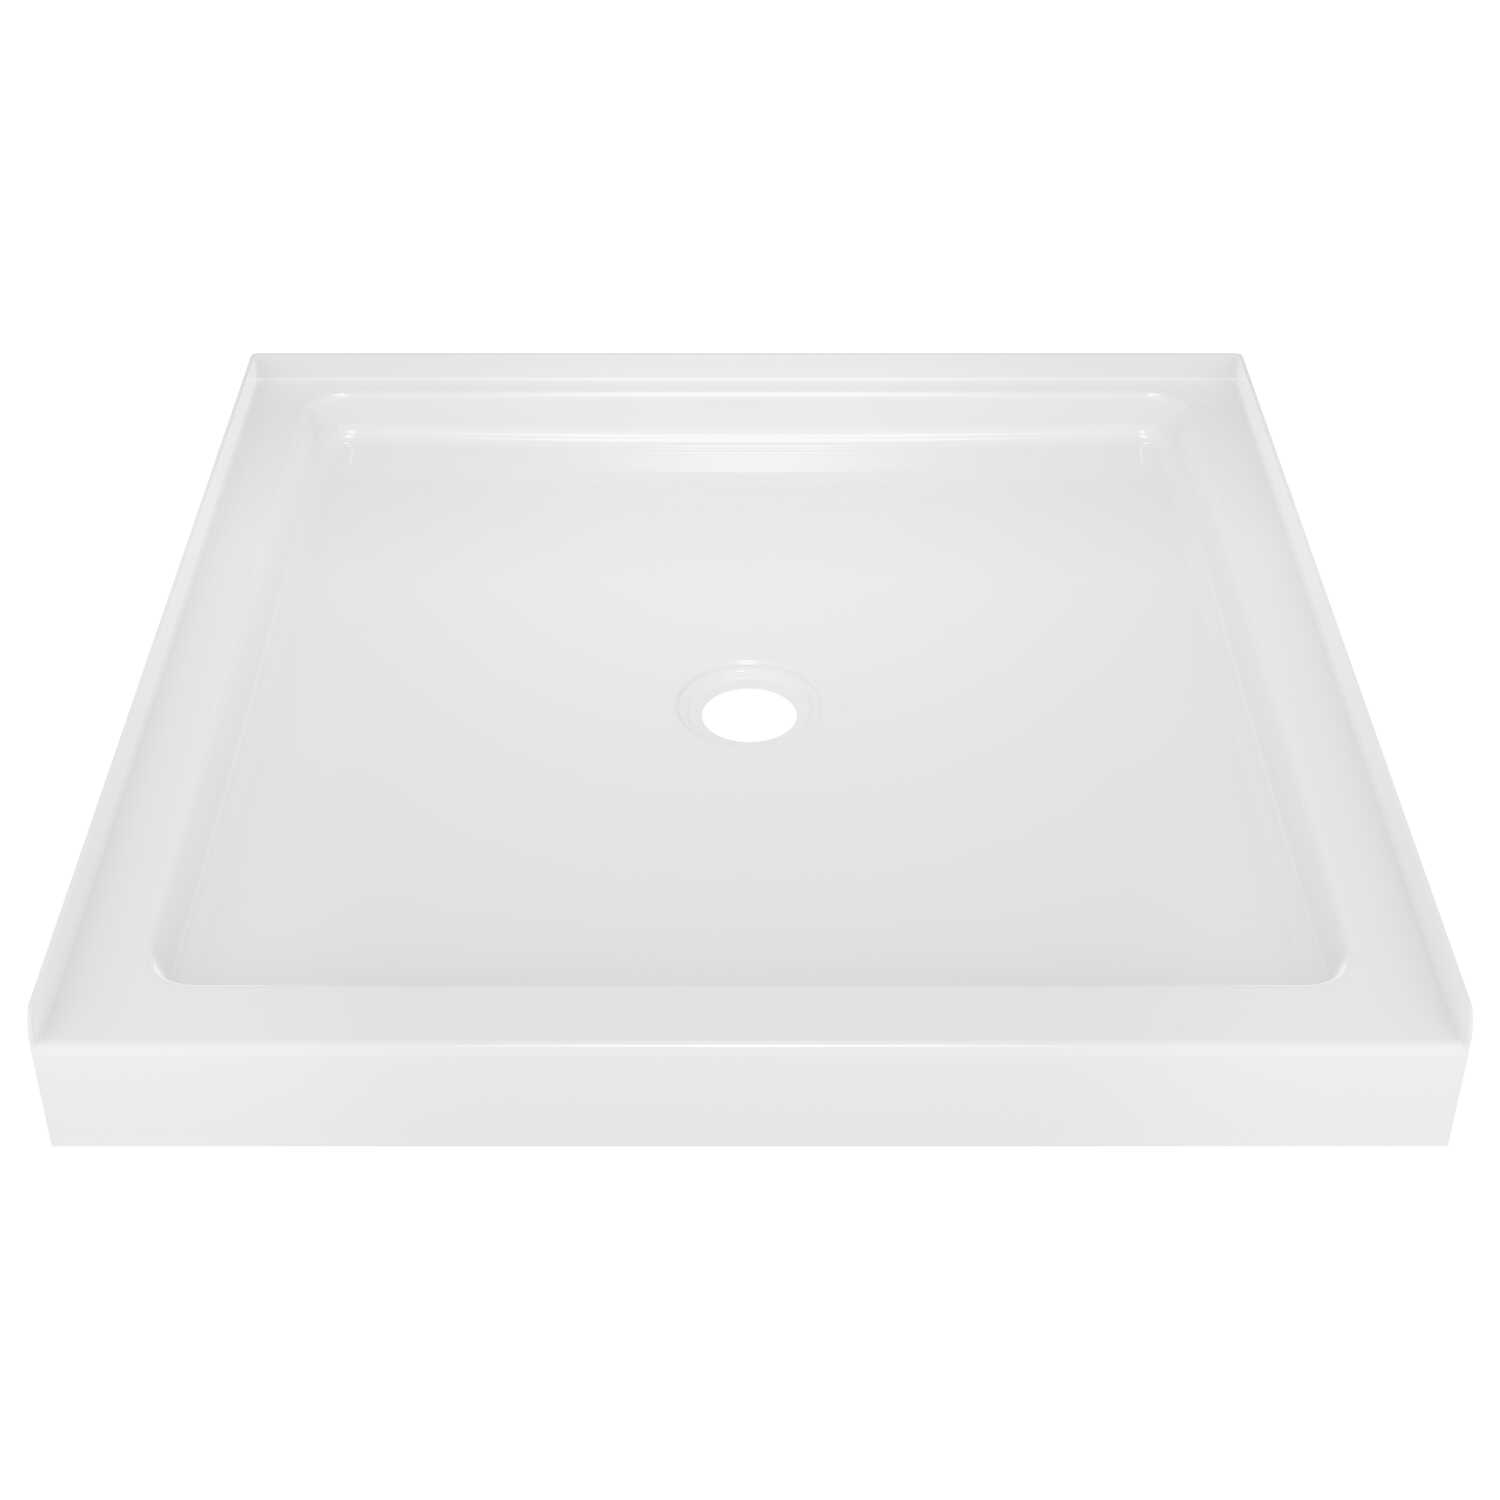 Delta Bathing System  Classic  3-1/2 in. H x 36 in. W x 36 in. L White  Shower Wall Base